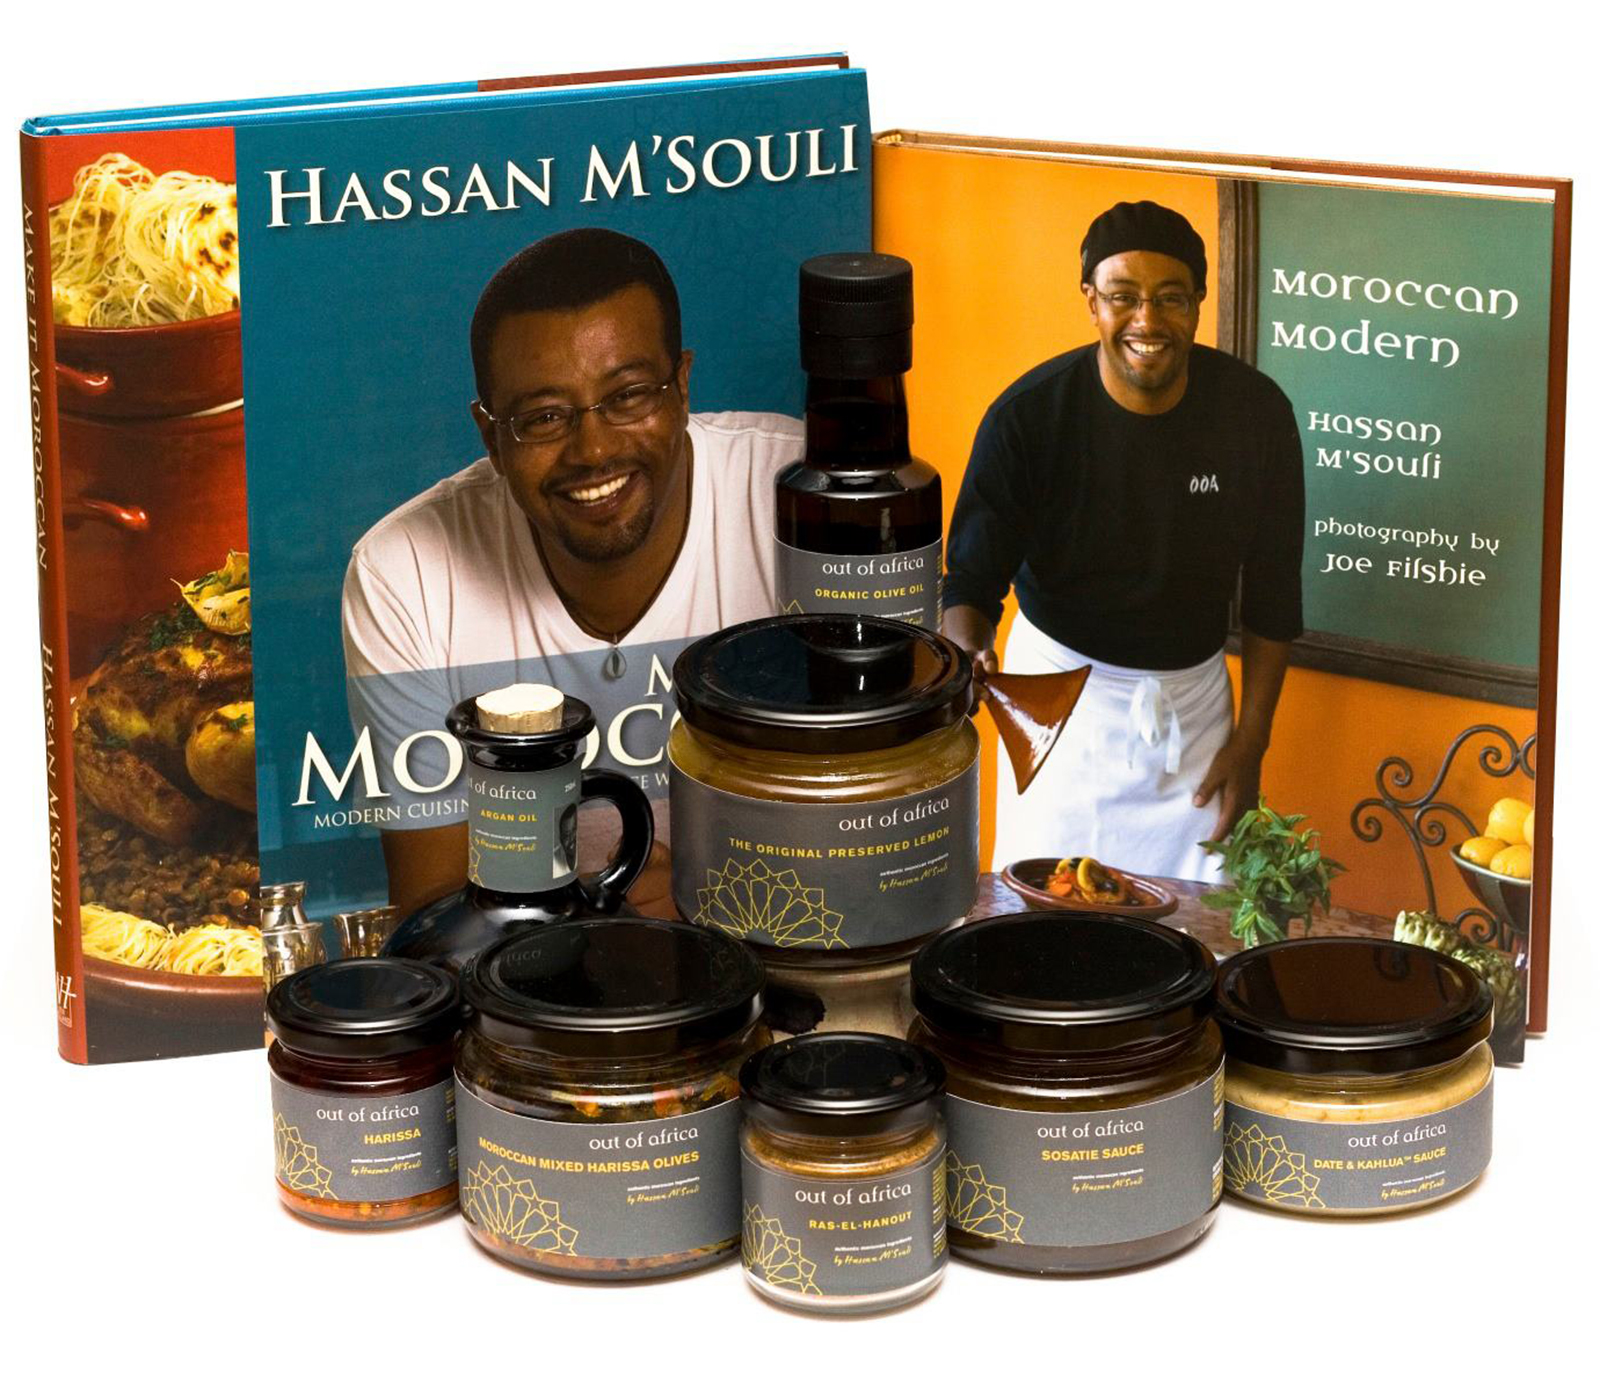 Books & Products by Hassan M'Souli